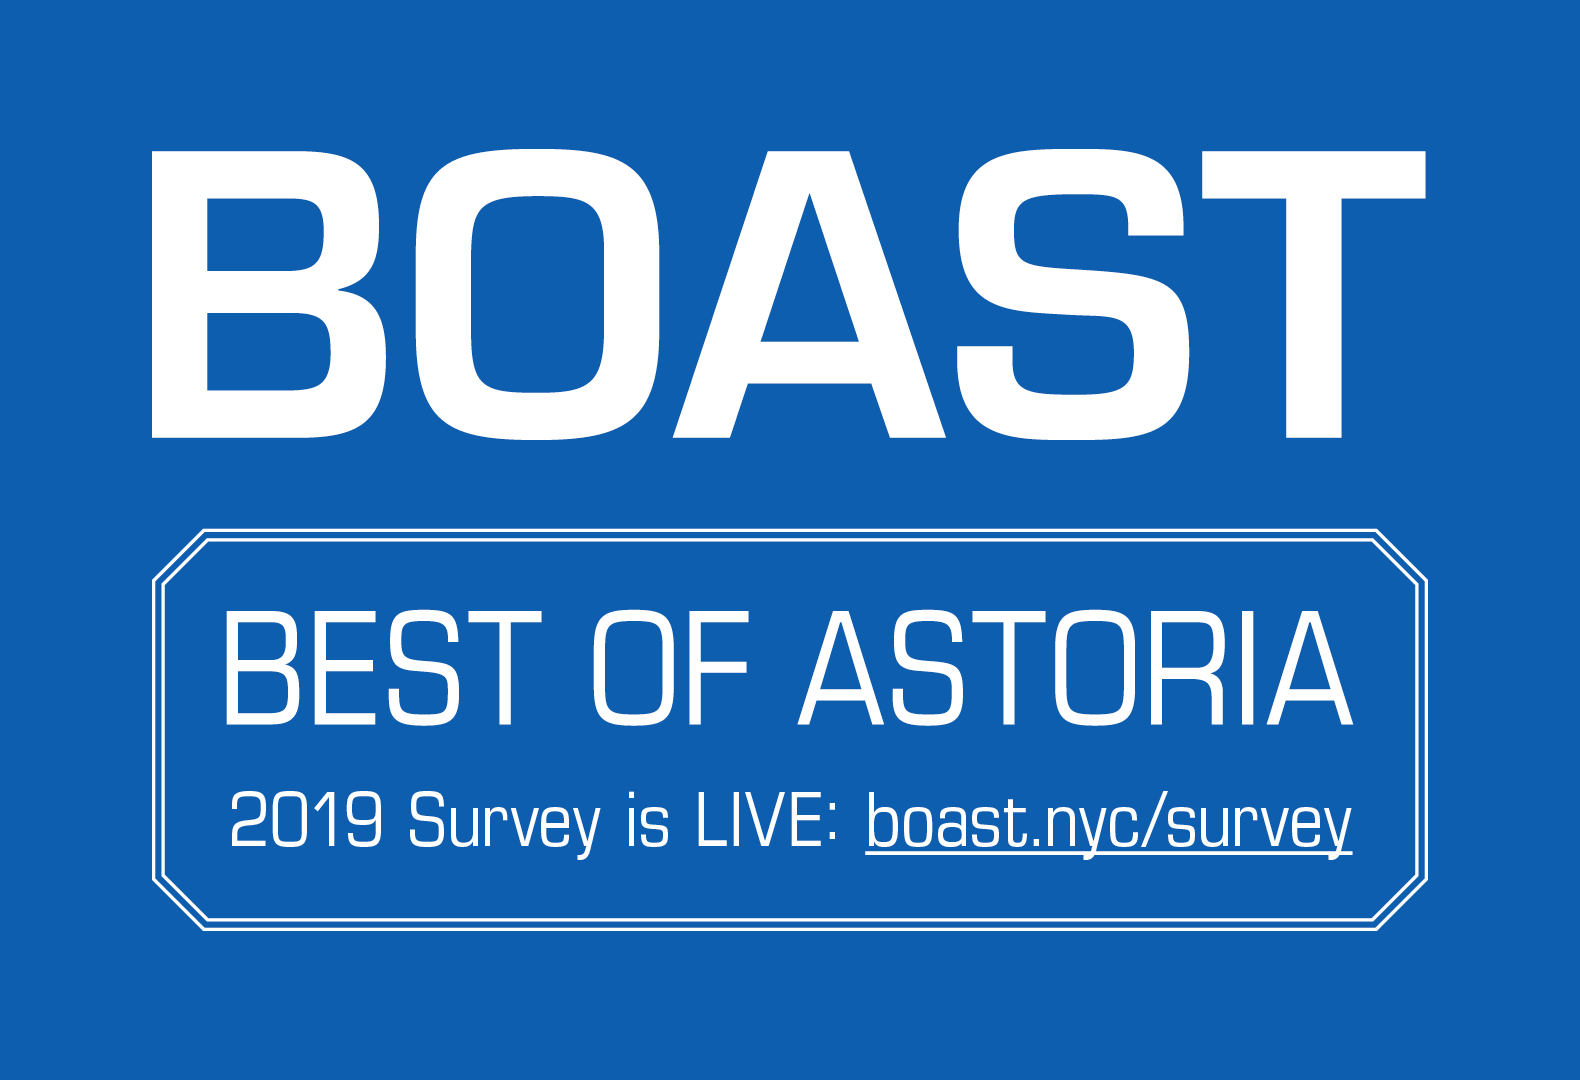 BOAST-2019-survey-live-mailchimp